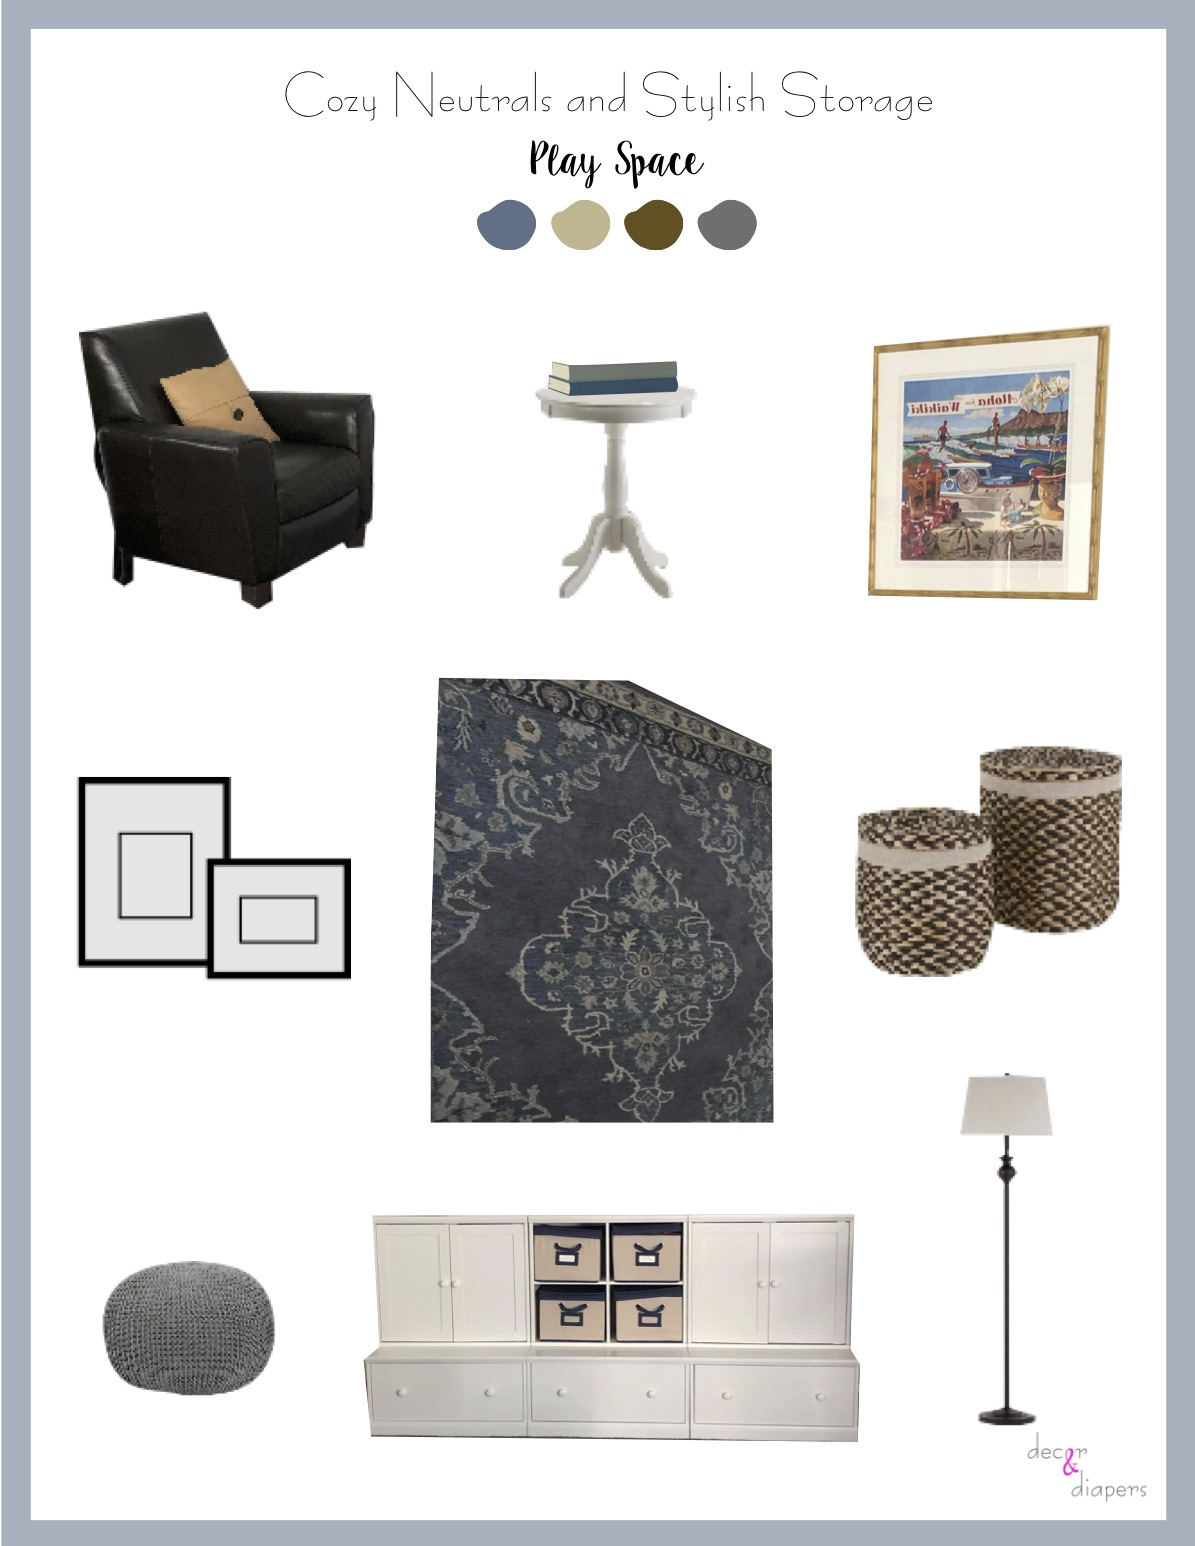 Kaufman, Melody- Play Space. Inspiration Board2.jpg